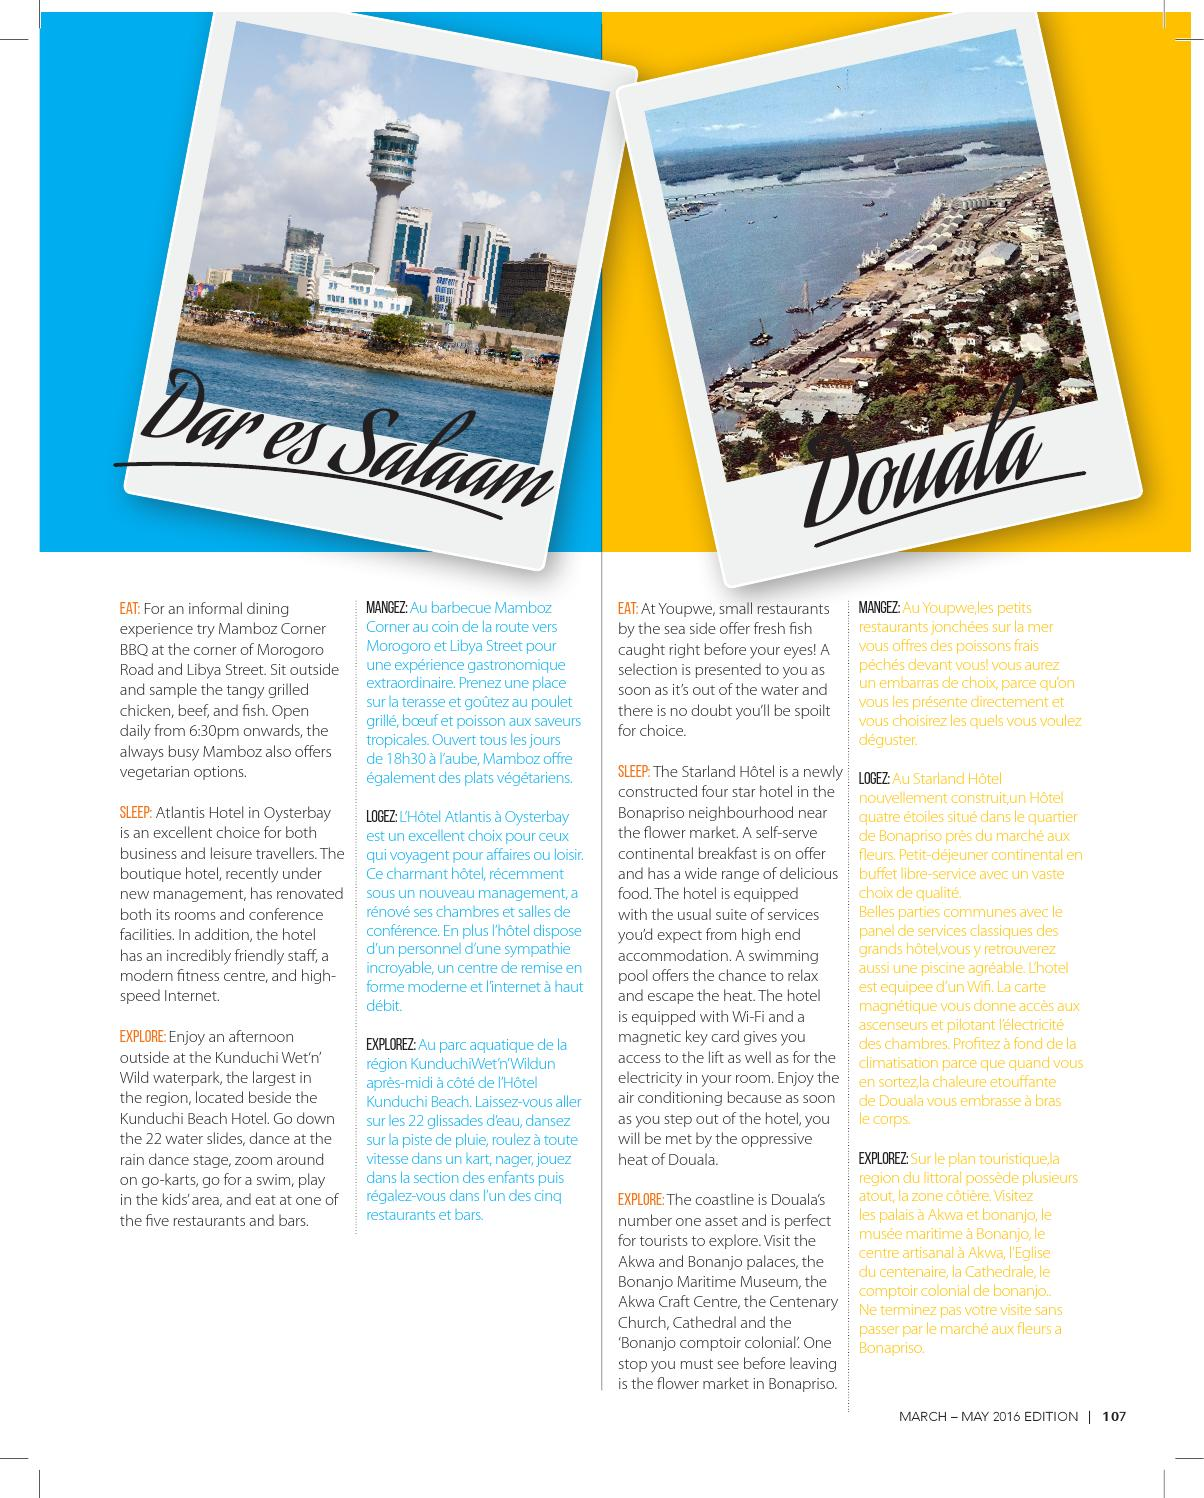 Rwandair inzozi magazine march 2016 by inzozi magazine issuu